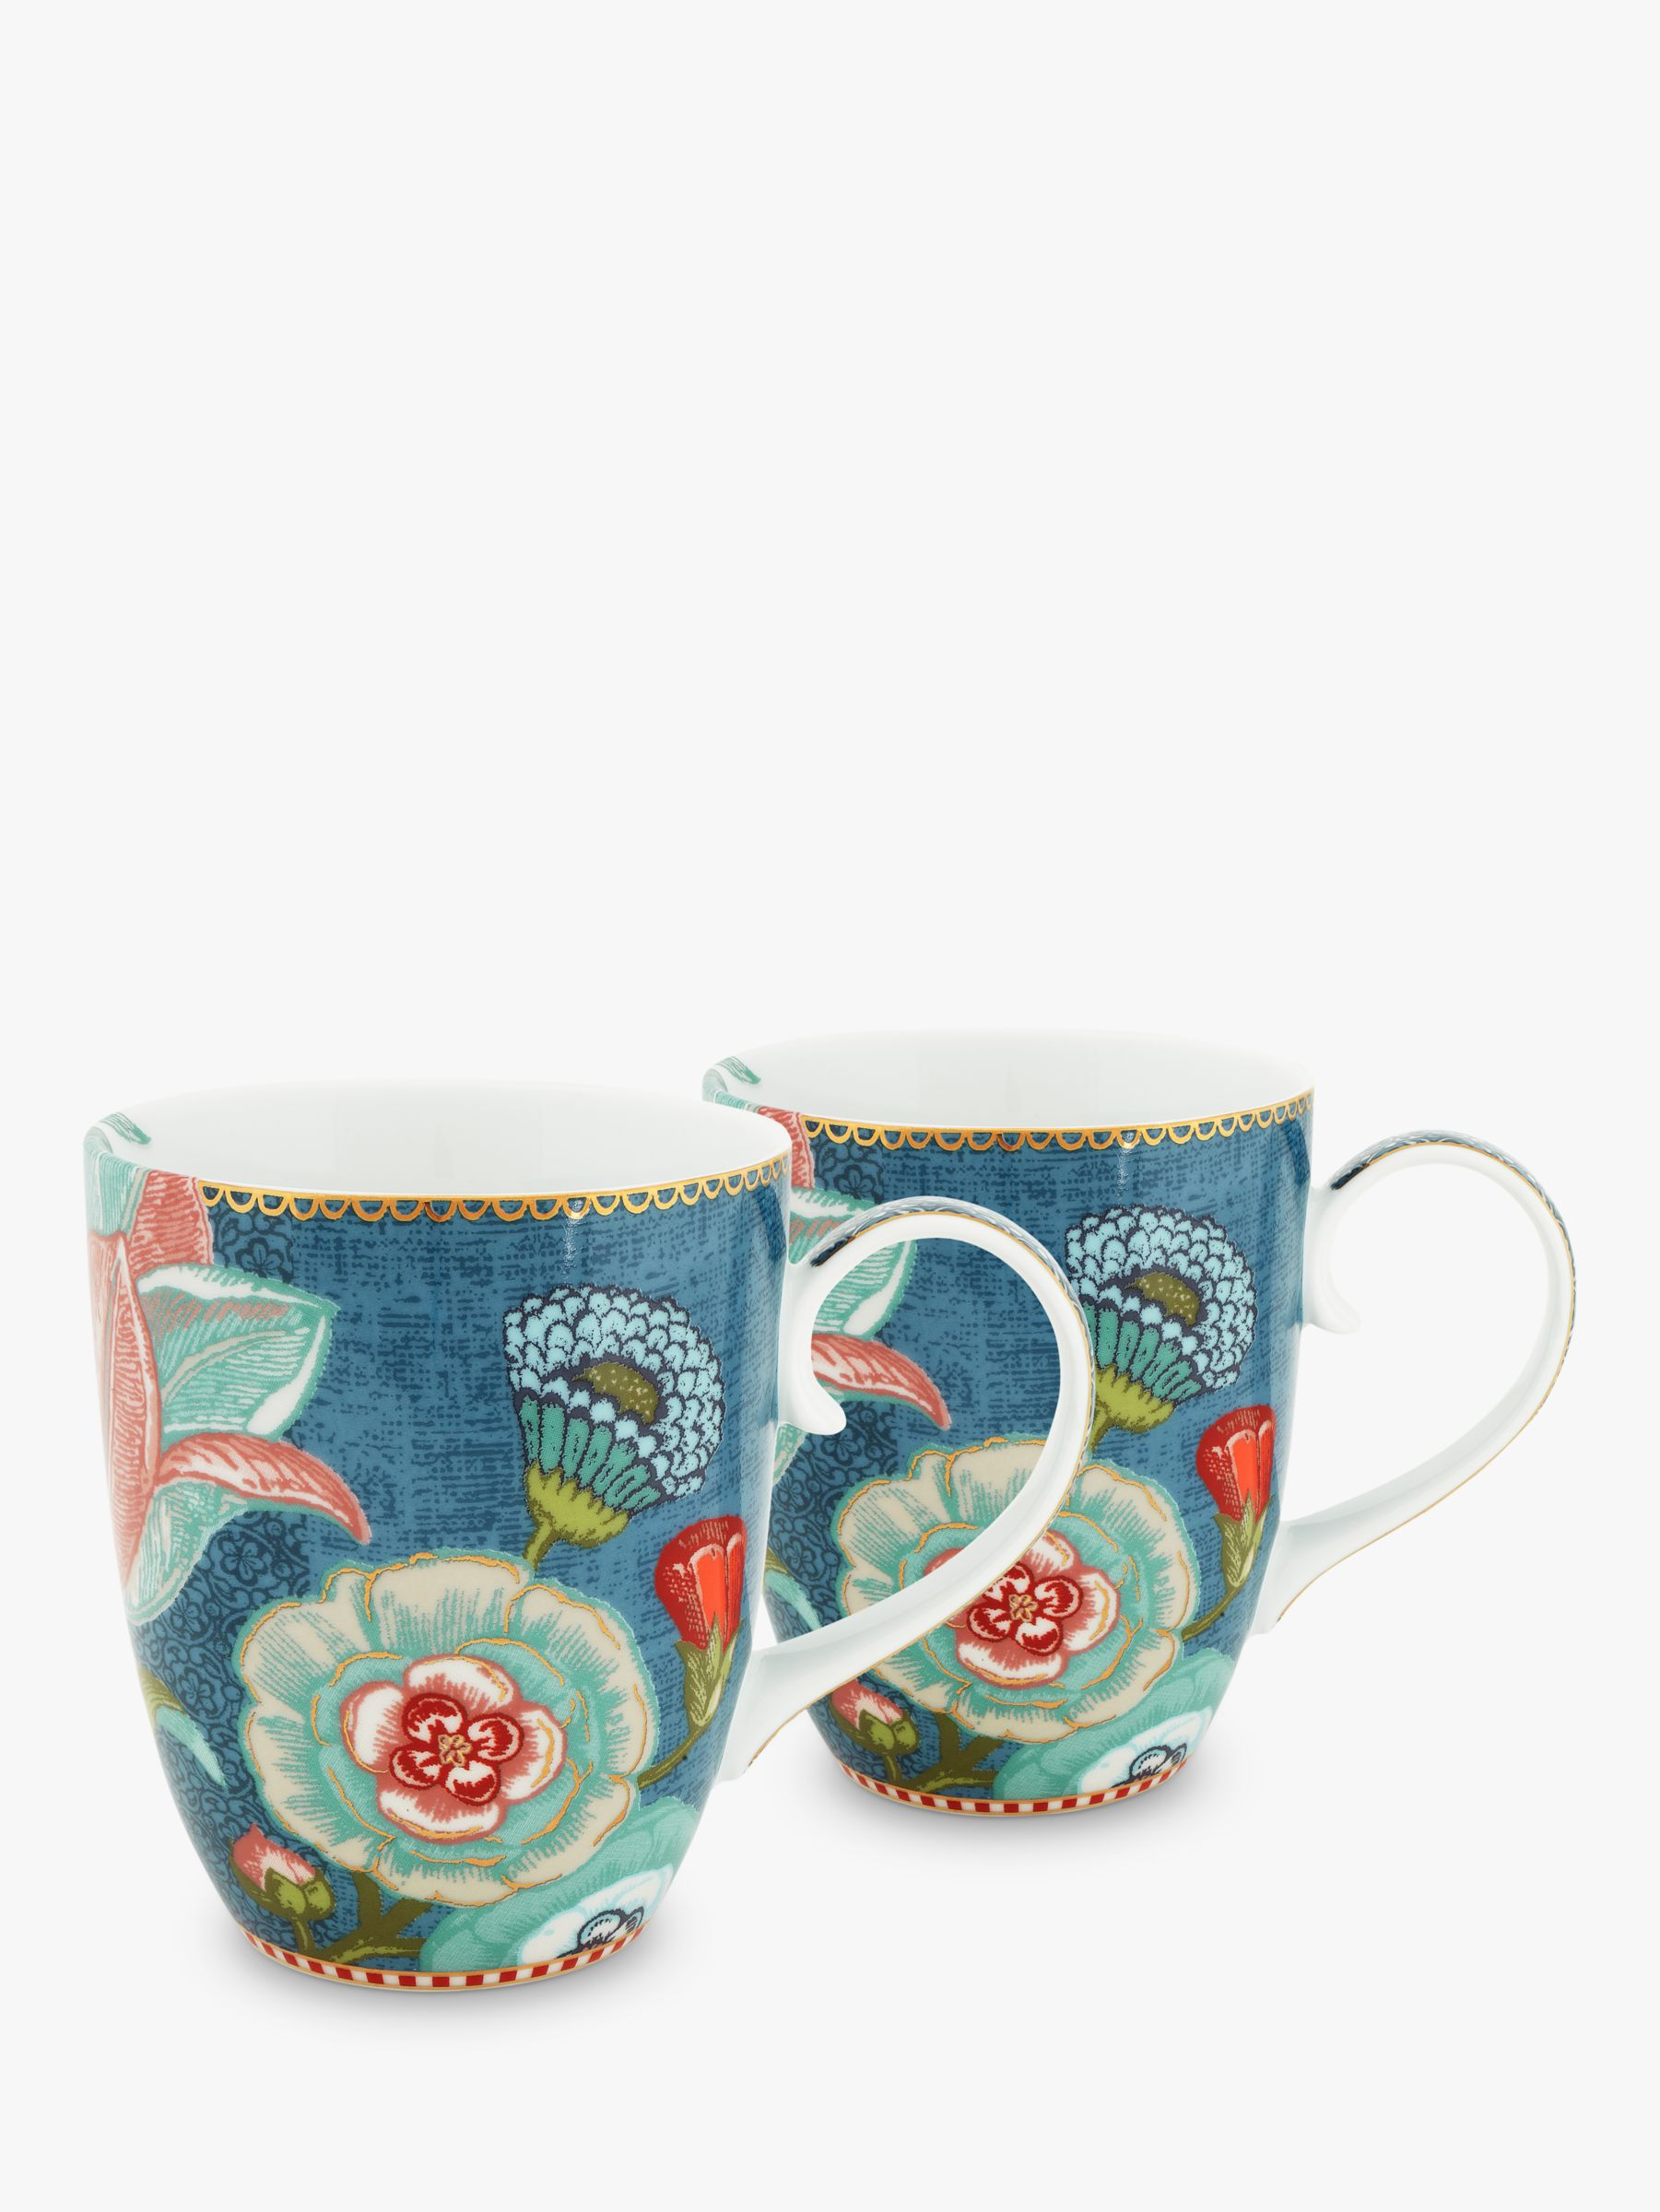 PiP Studio PiP Studio Spring To Life Large Mug, Set of 2, Blue